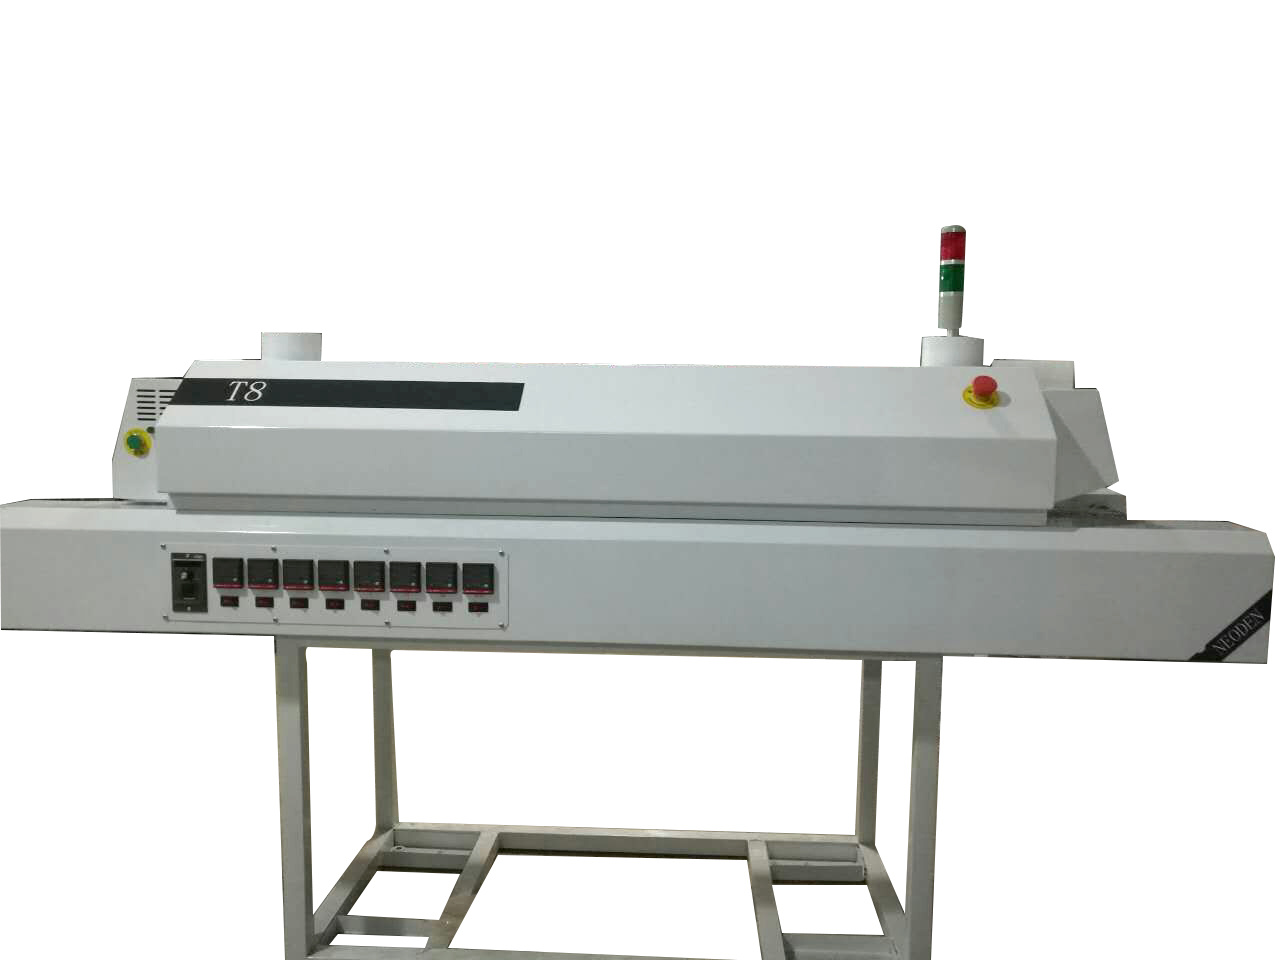 China Reflow Oven T8 Smt Soldering Station China Soldering Station Reflow Oven